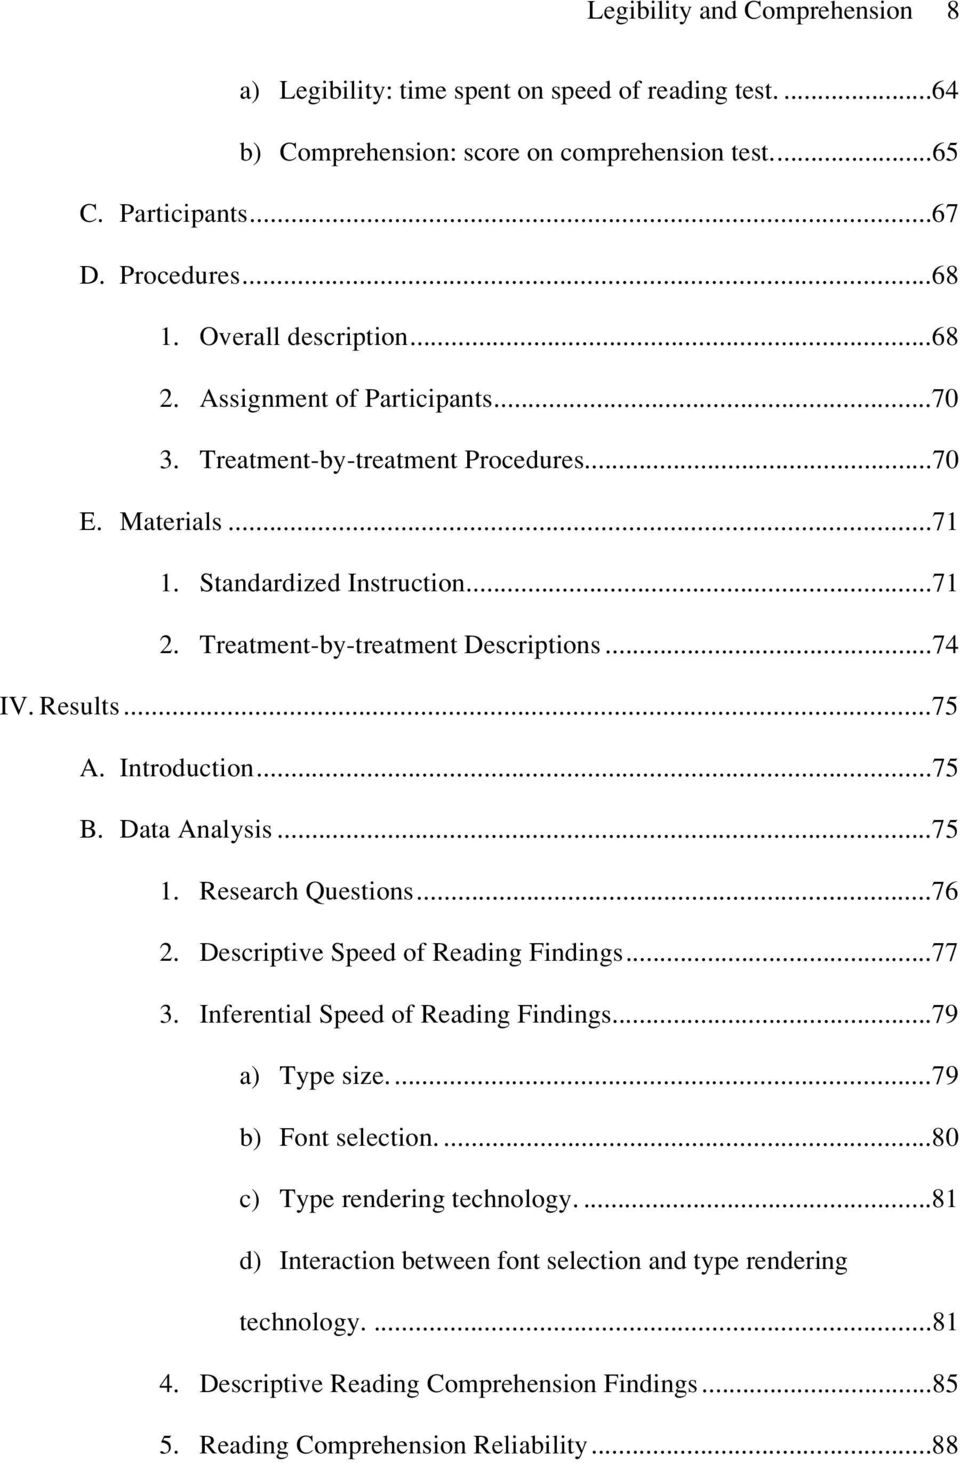 Results...75 A. Introduction...75 B. Data Analysis...75 1. Research Questions...76 2. Descriptive Speed of Reading Findings...77 3. Inferential Speed of Reading Findings...79 a) Type size.